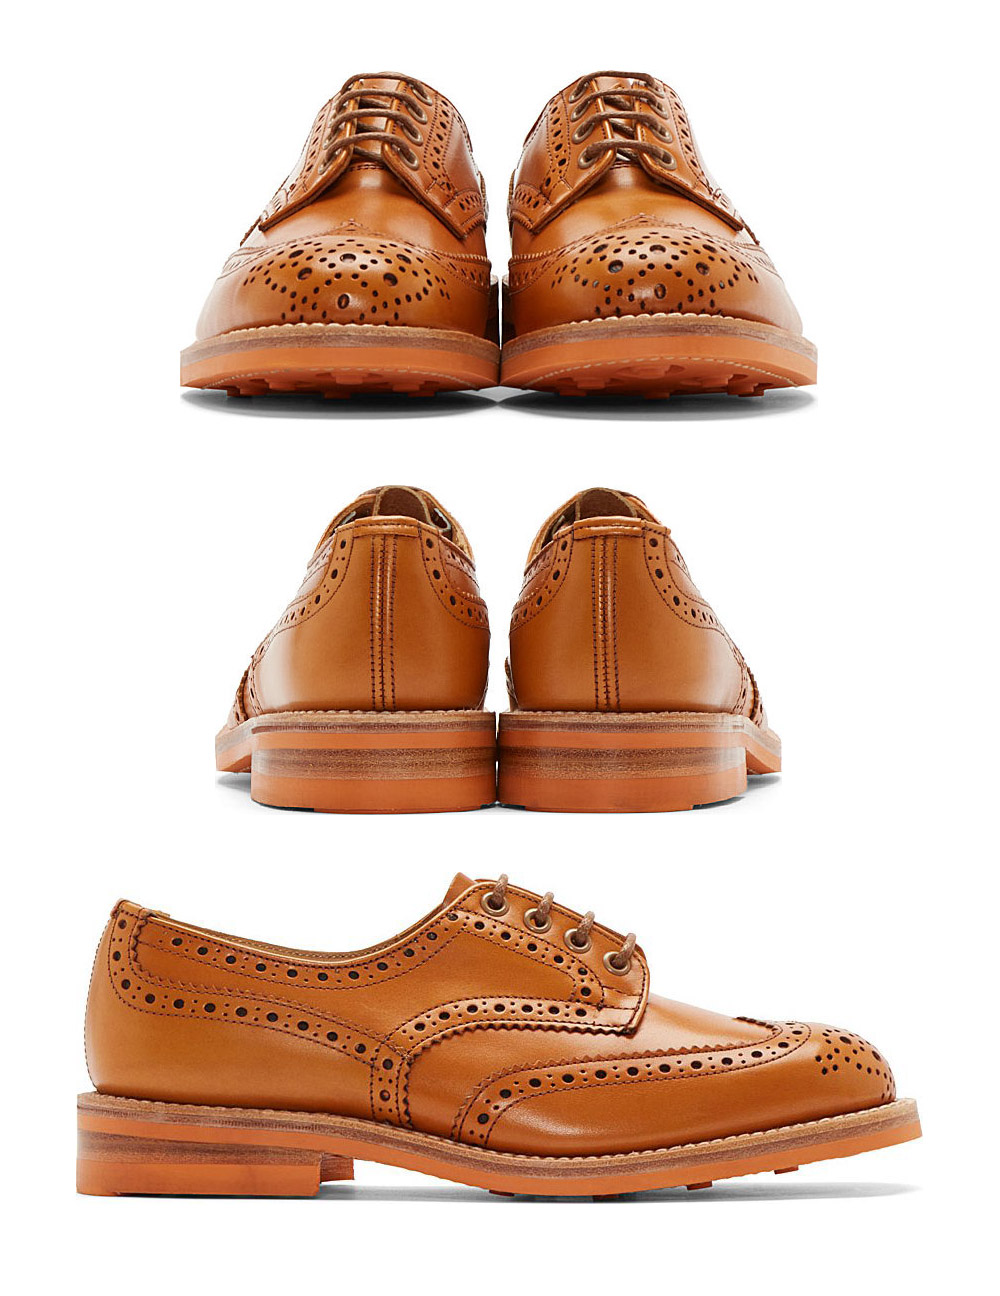 Beige Shortwing Brogue, Tricker's x Junya Watanabe three angles